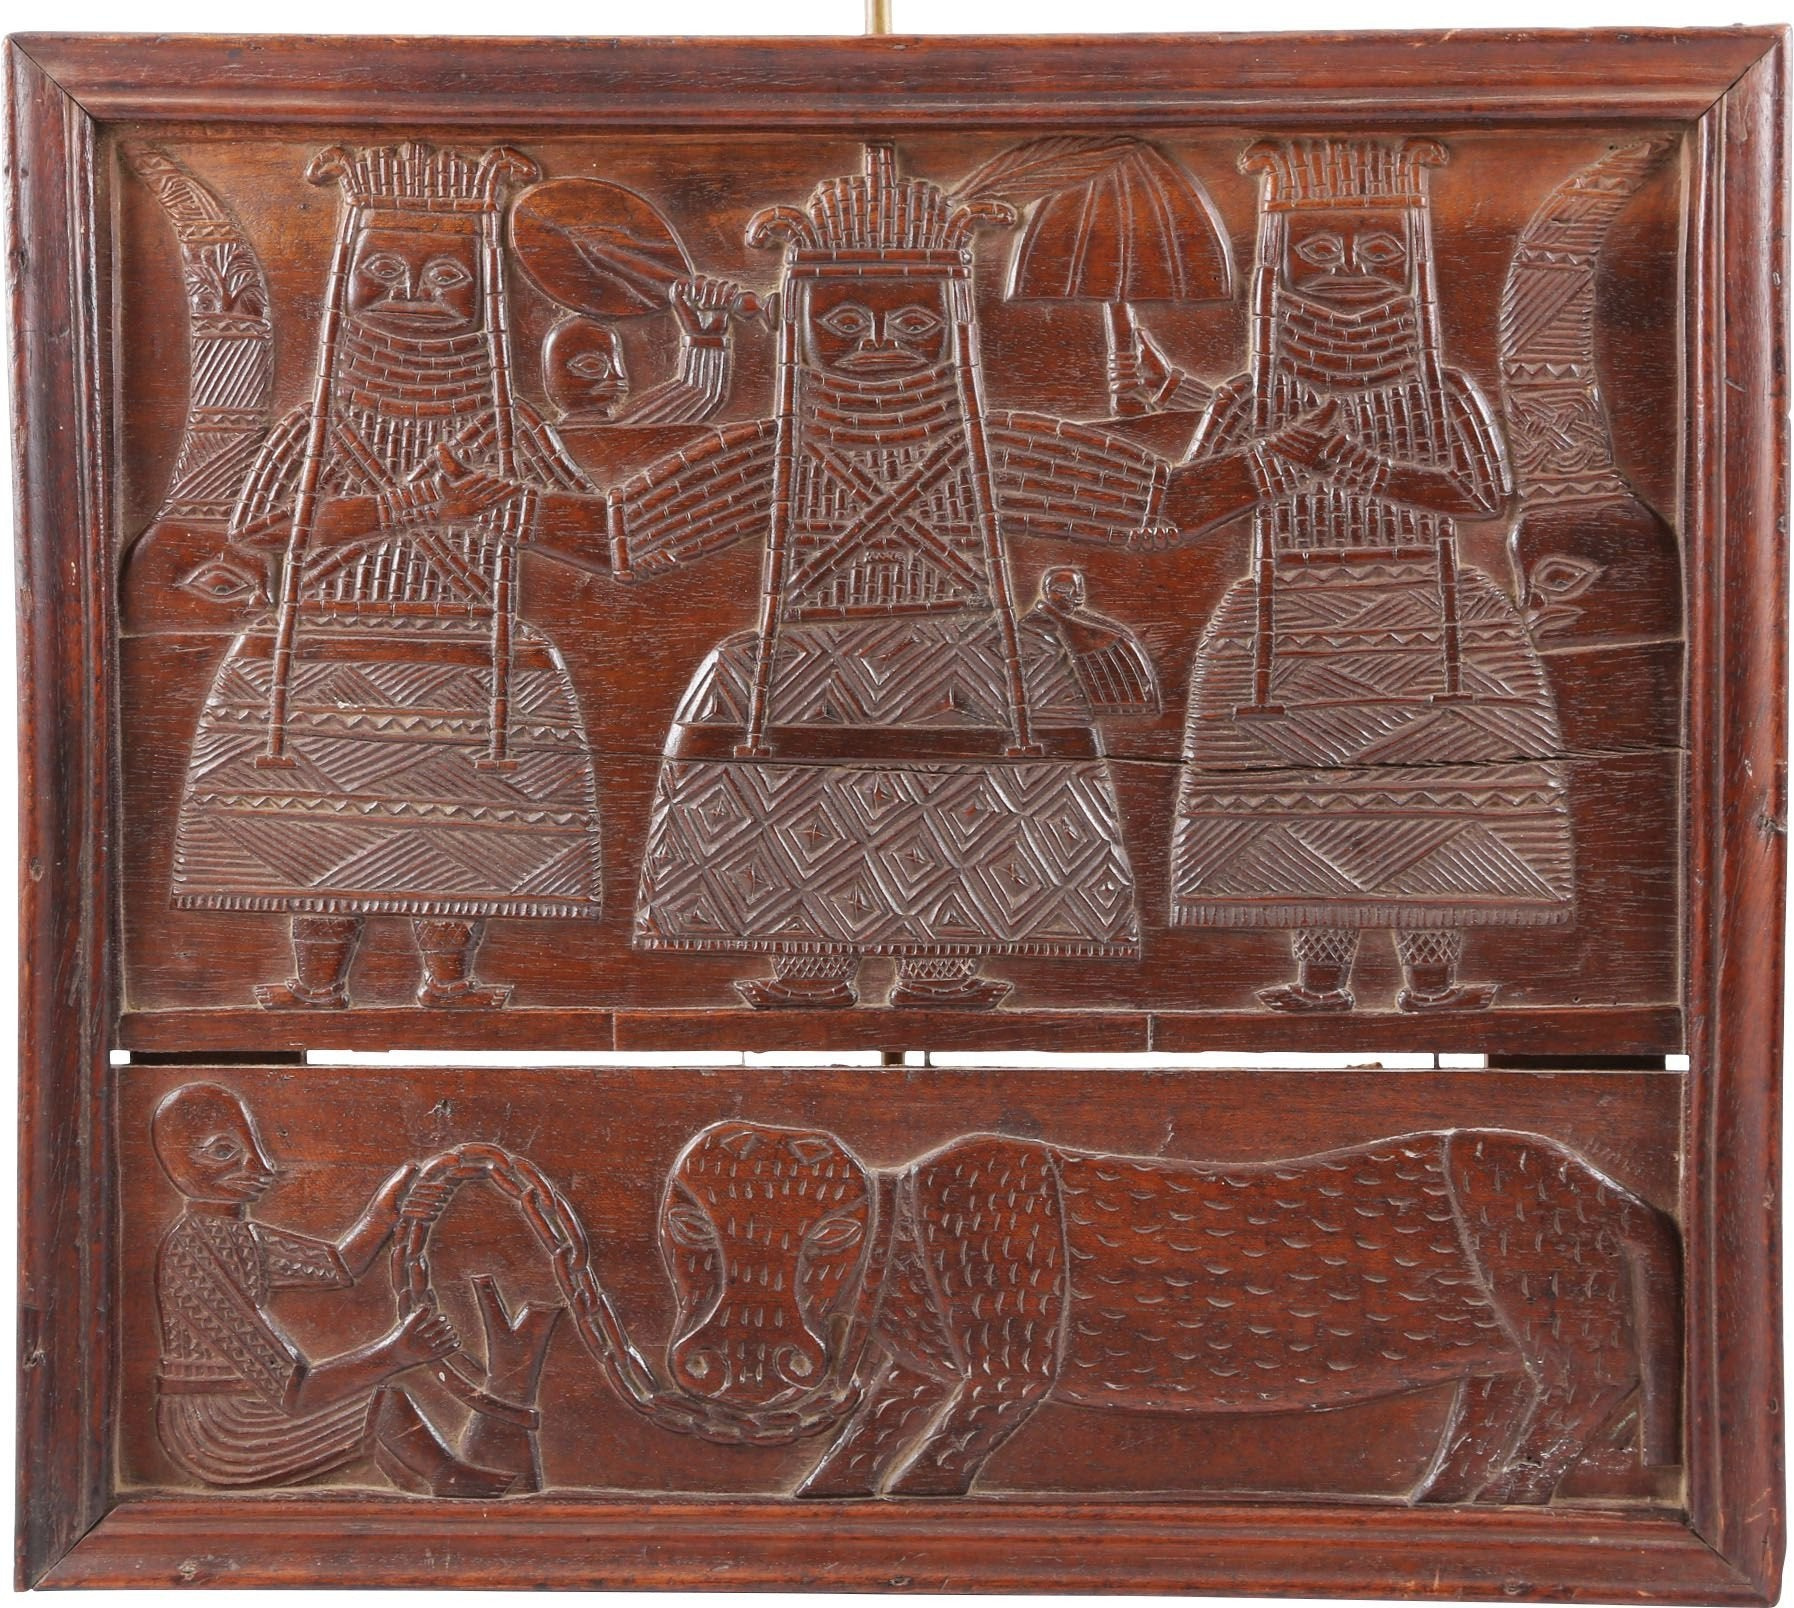 BENIN CARVED WOOD PANELS - Fagan Arms